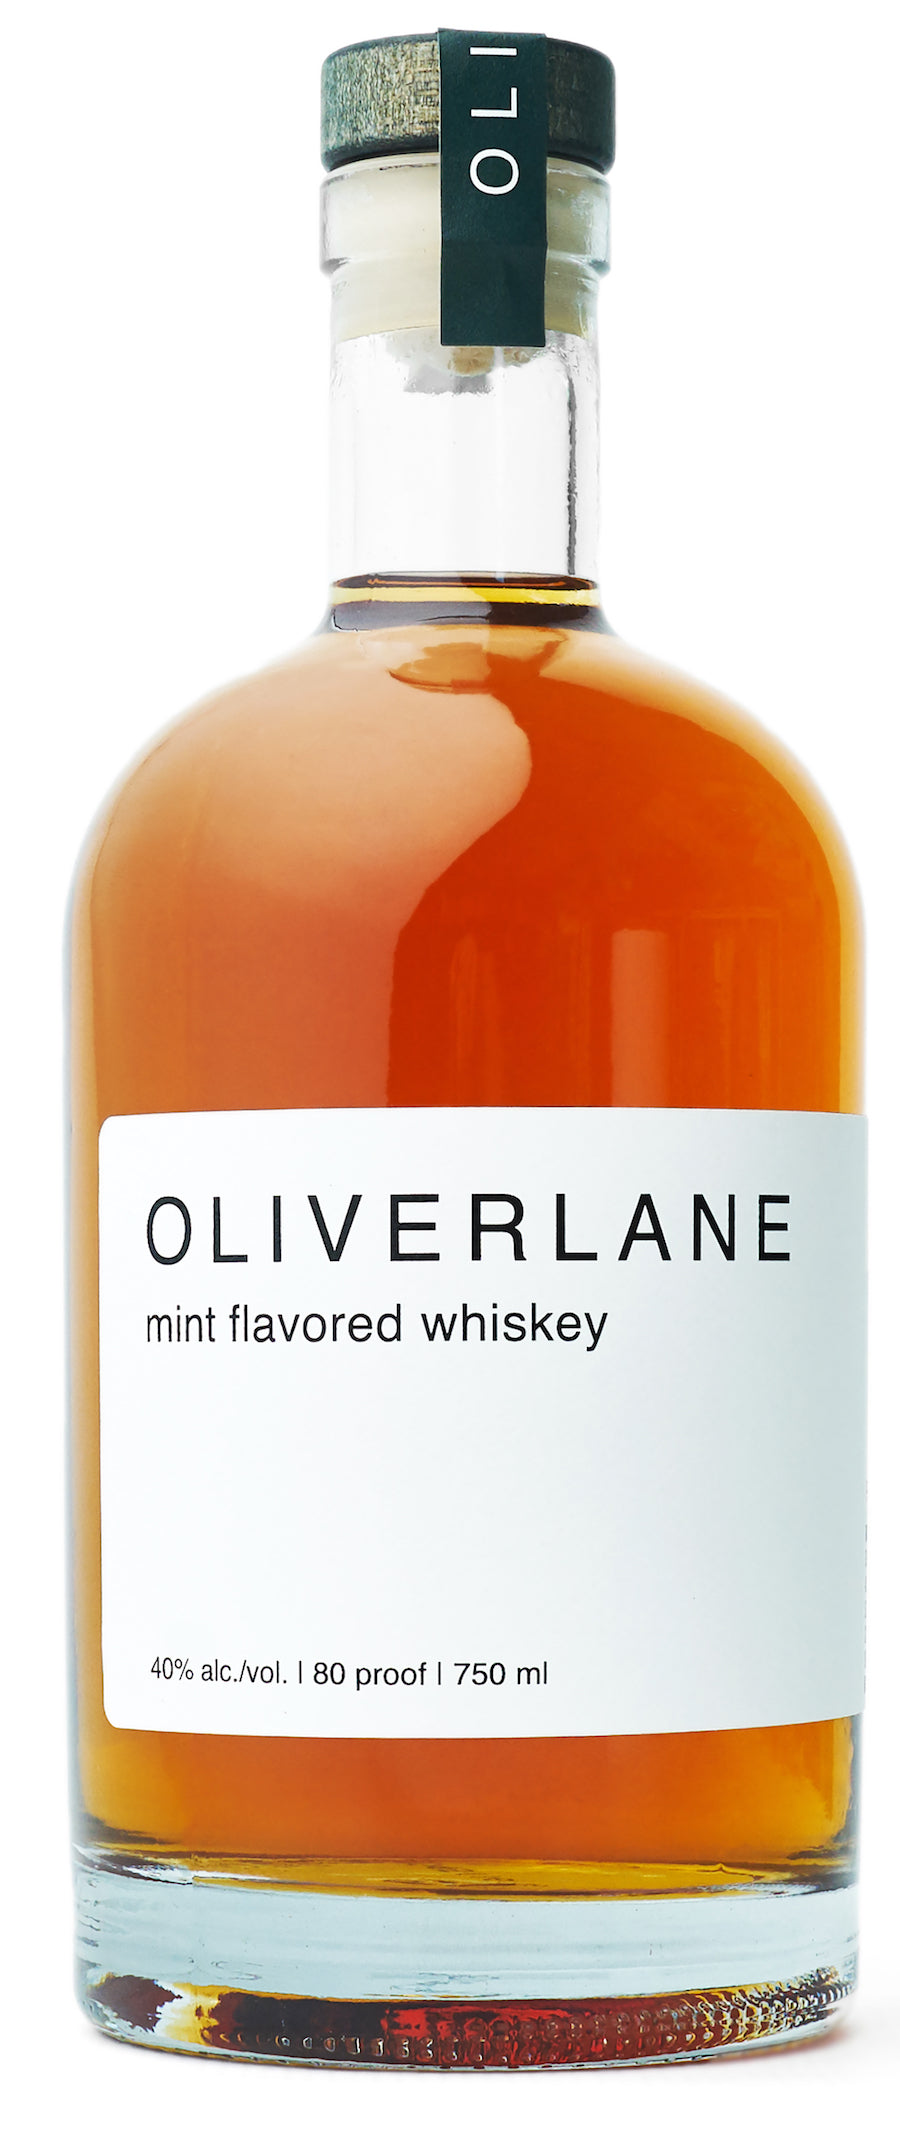 Oliverlane Mint Flavored Whiskey